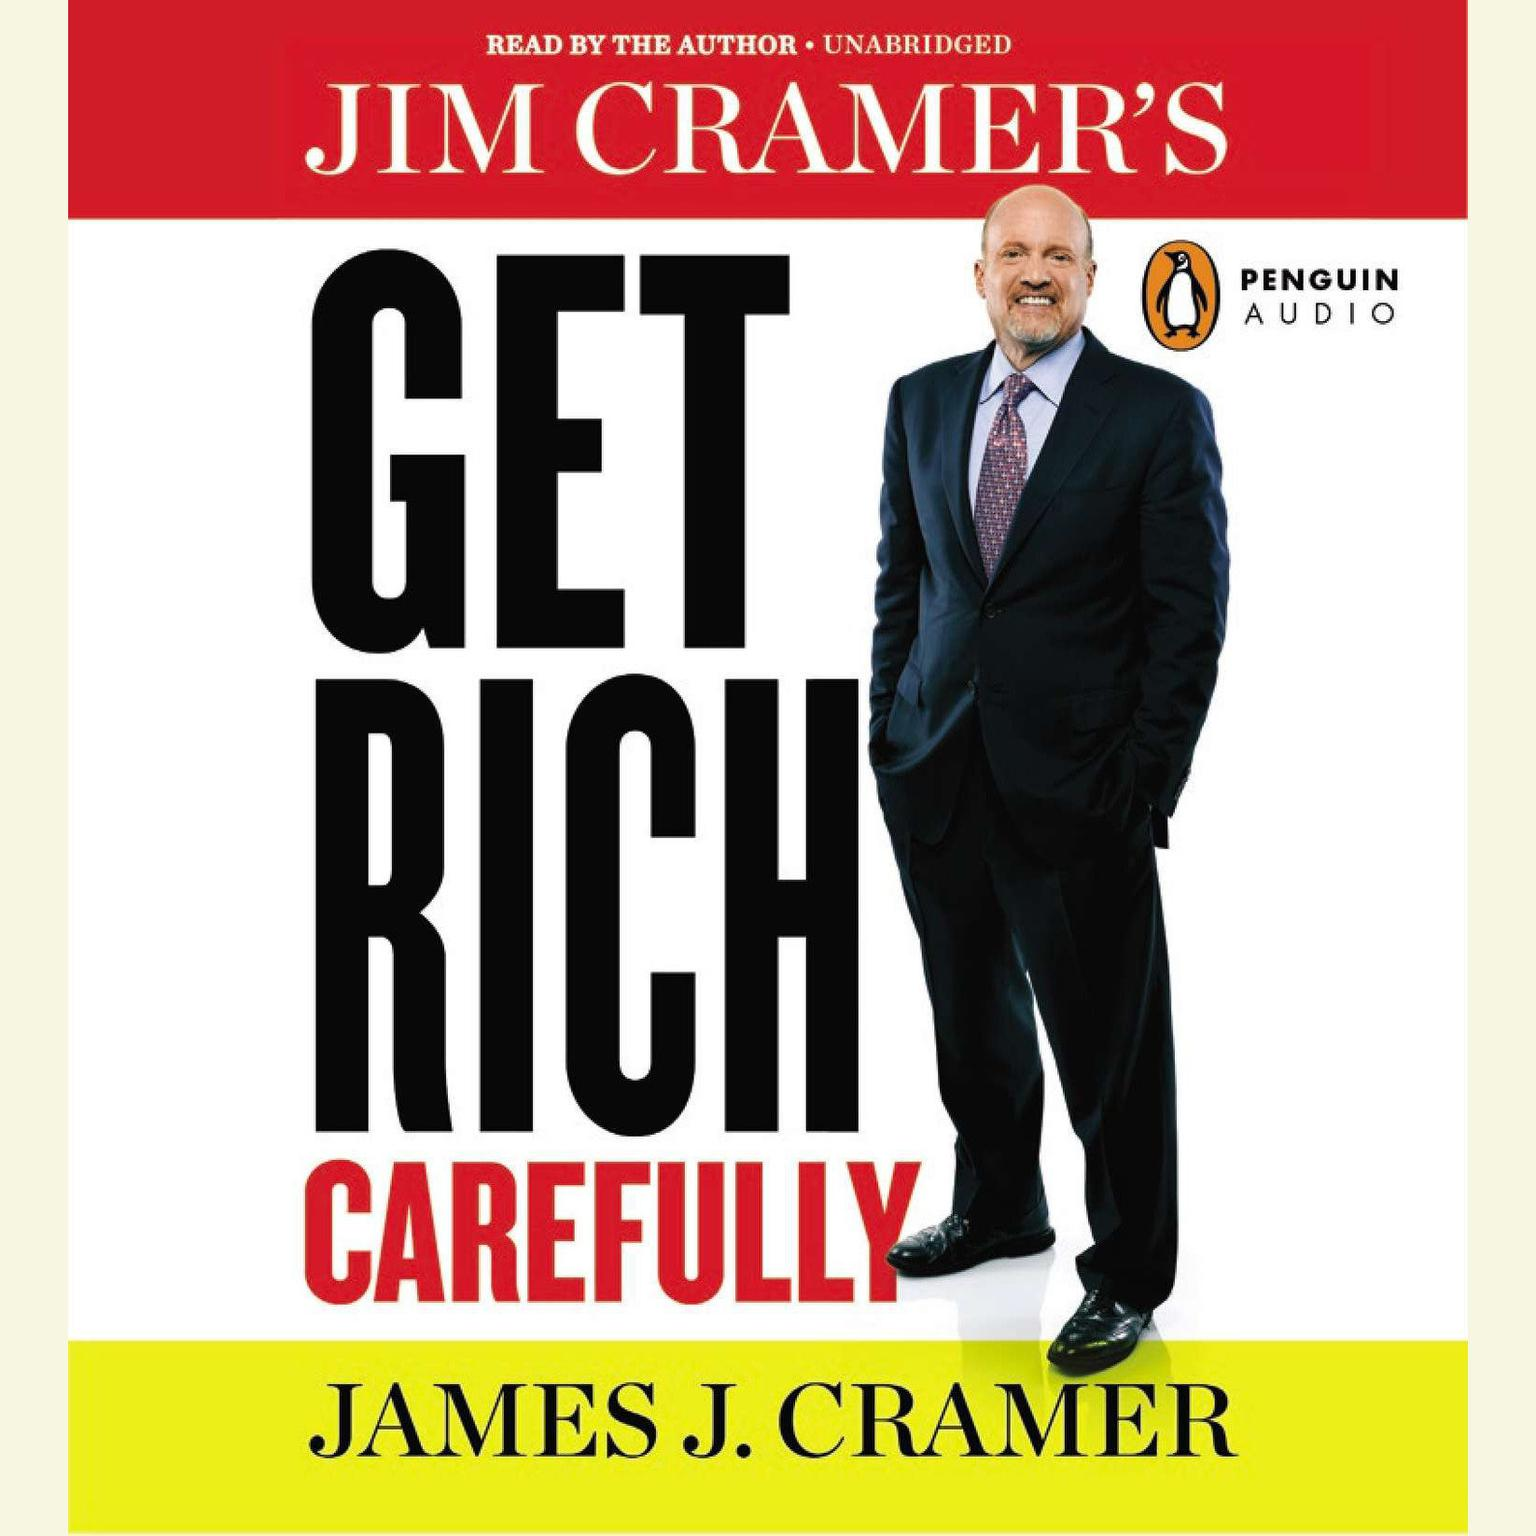 Printable Jim Cramer's Get Rich Carefully Audiobook Cover Art